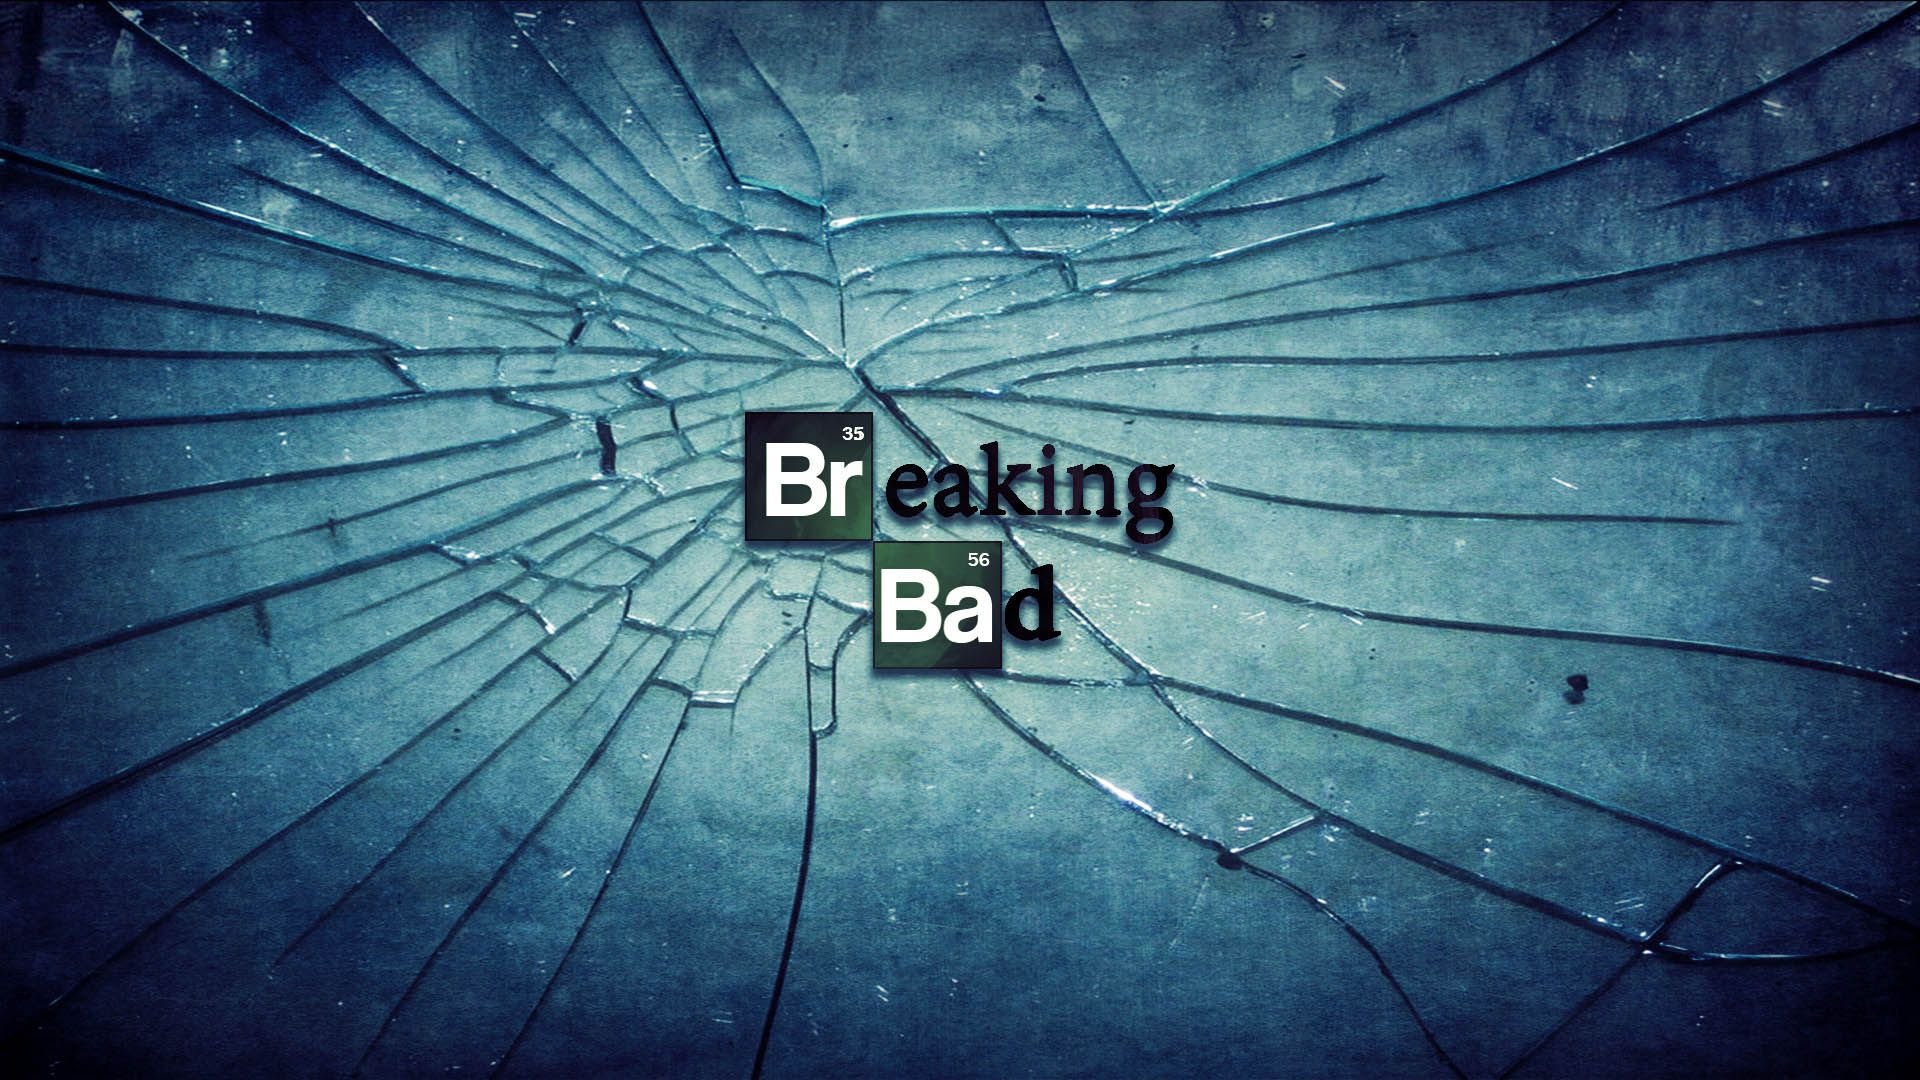 broken glass live wallpaper android apps on google play images